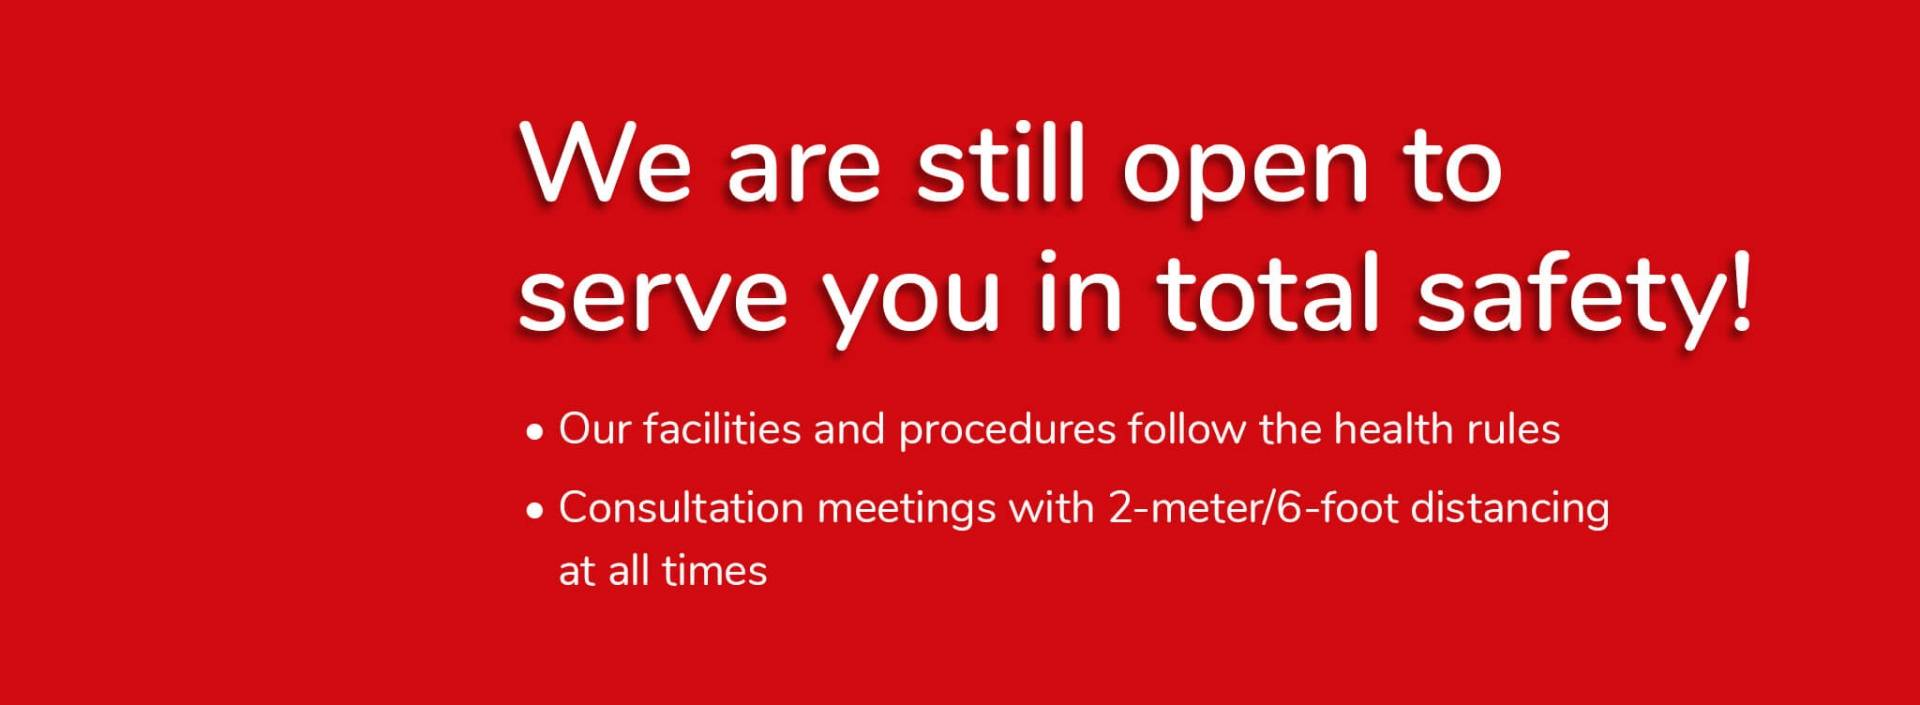 We are still open to serve you in total safety